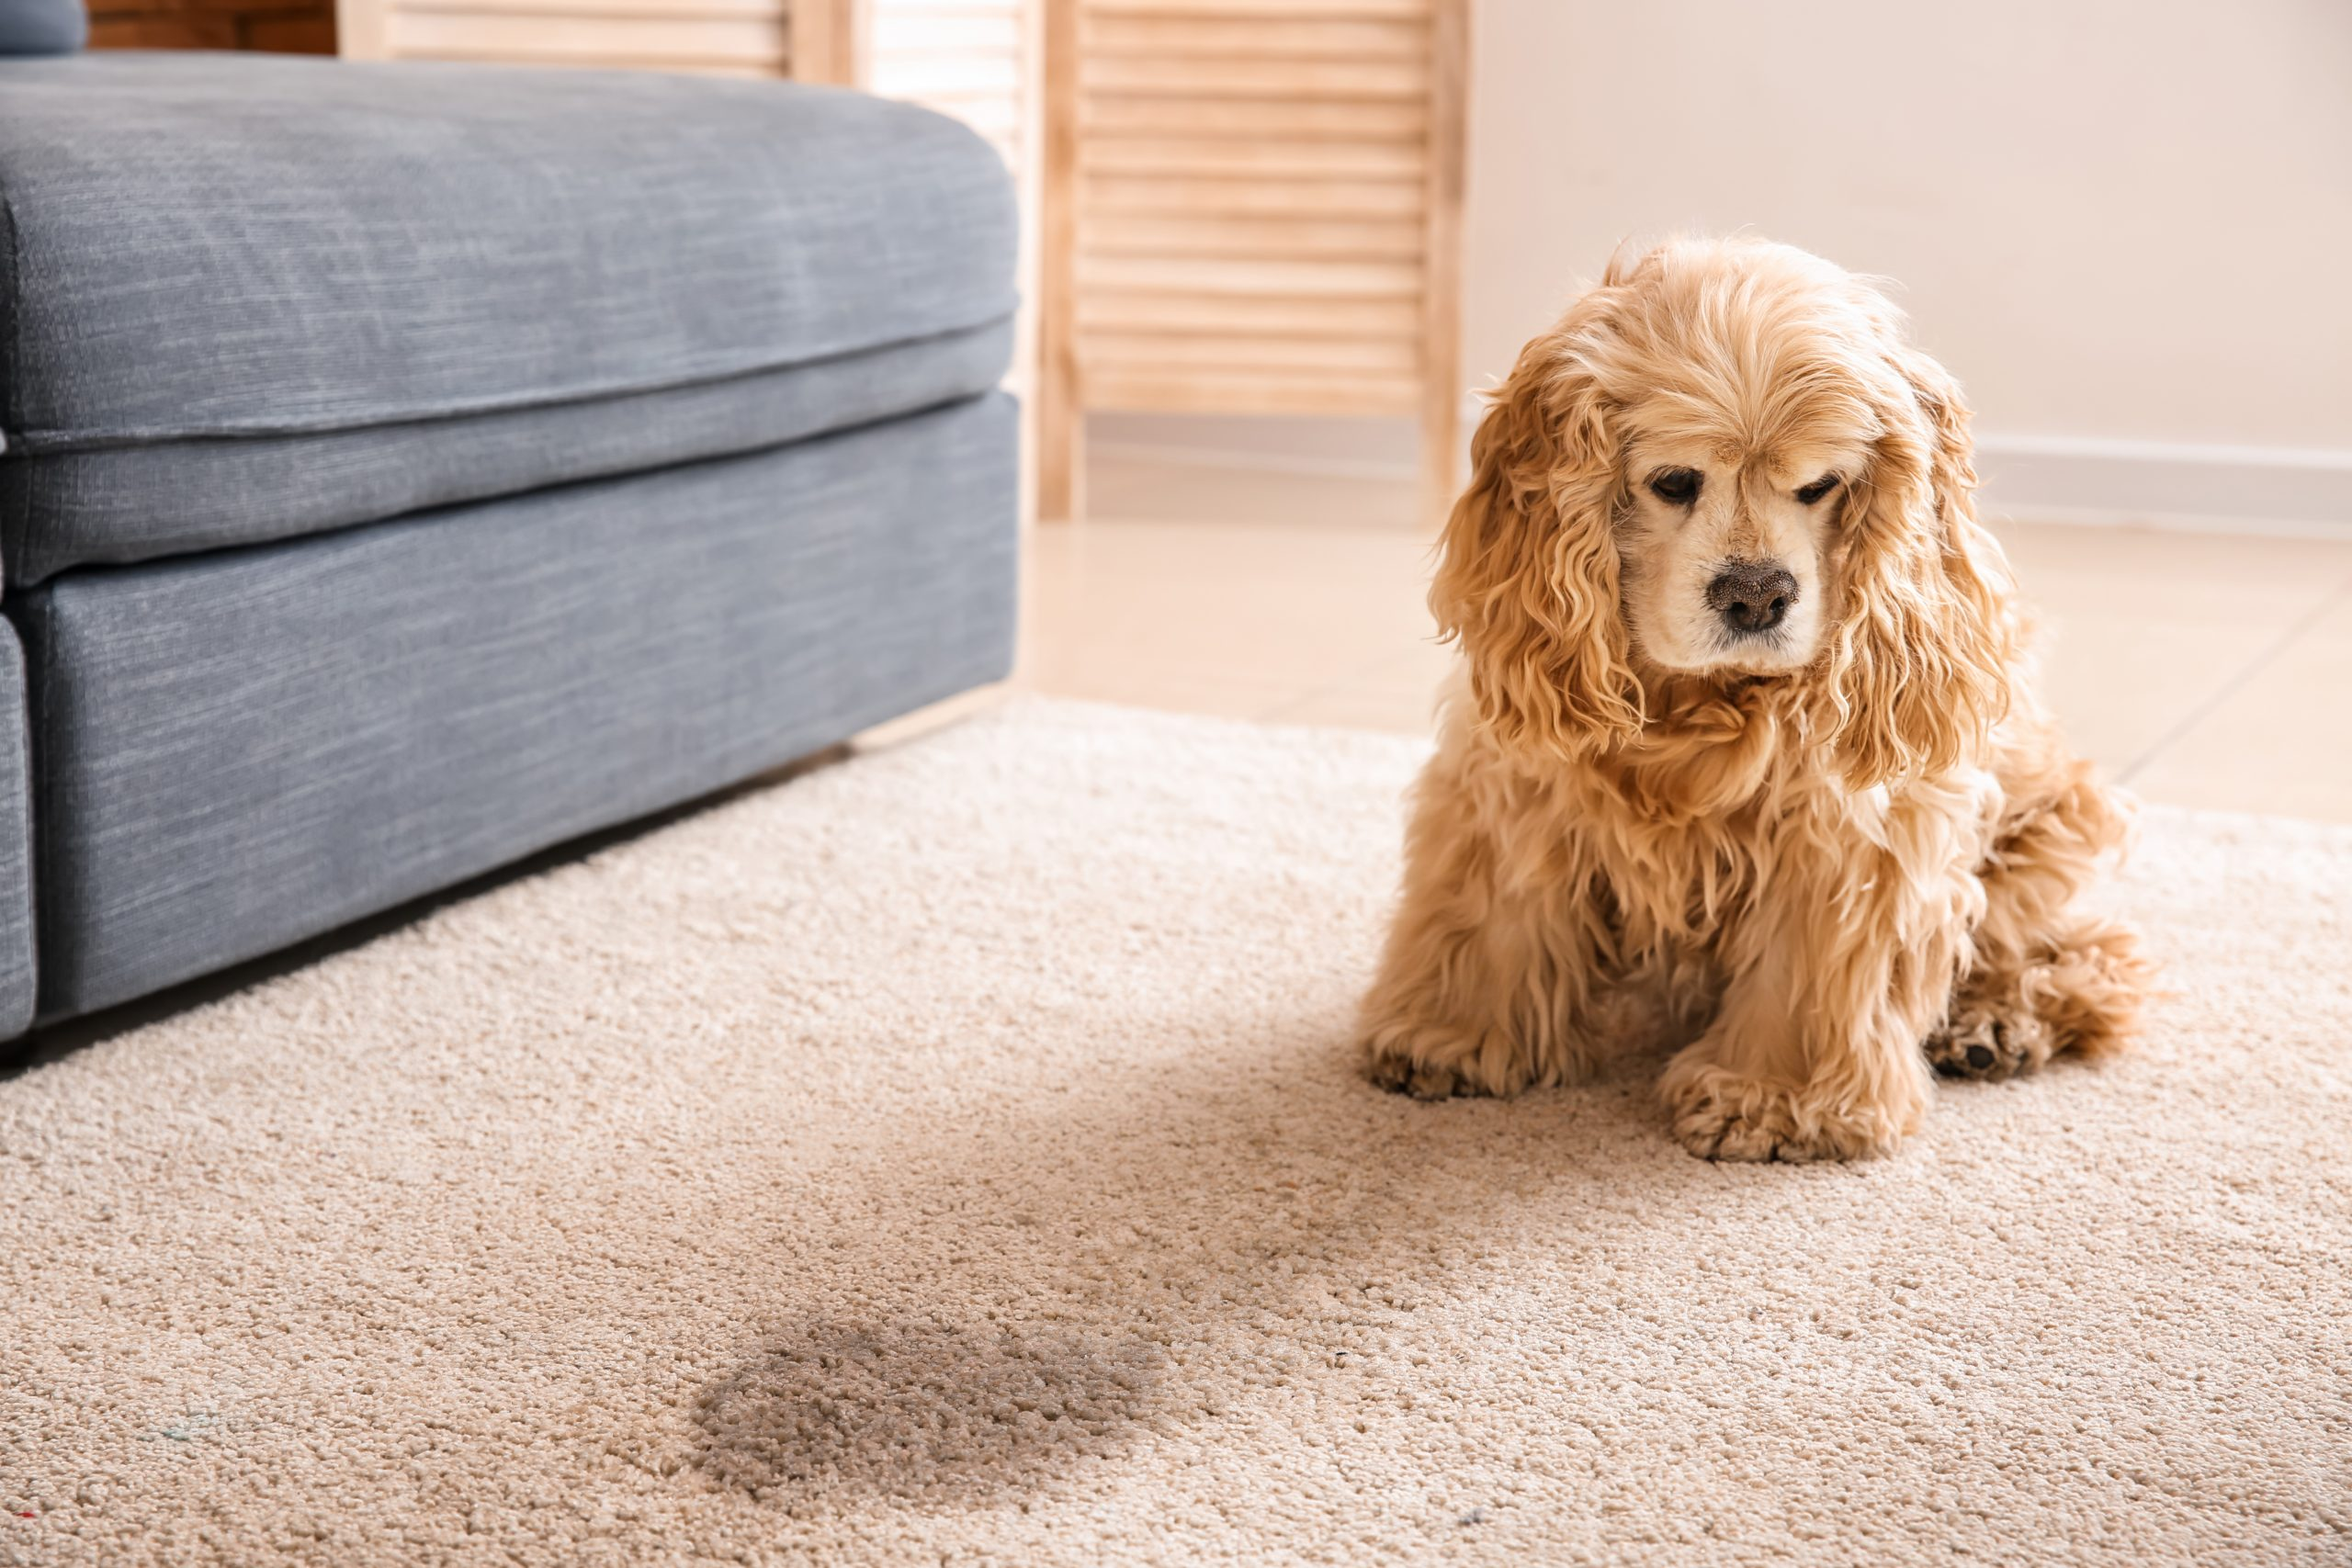 Reasons Why Pet Urine Is HarmfulToYour Carpet